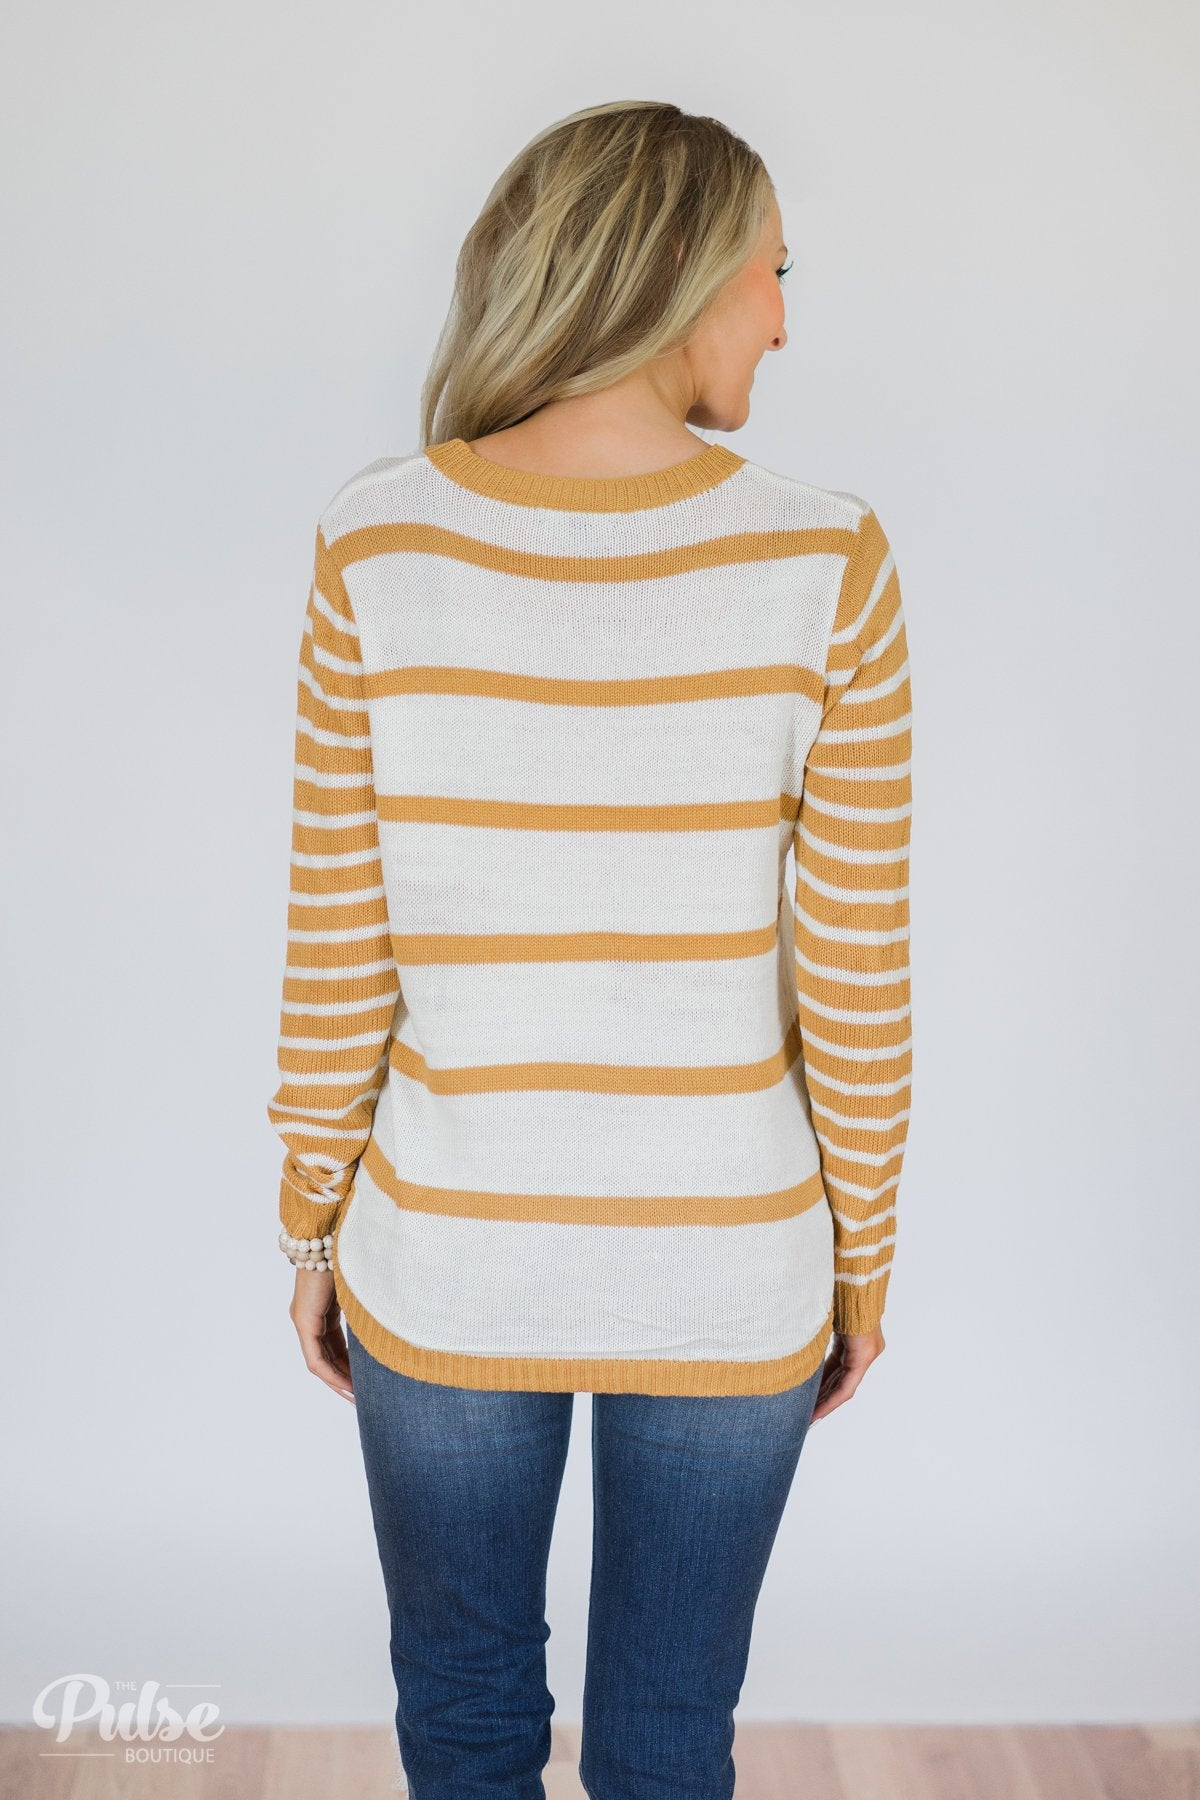 Good Things Coming Striped Knit Sweater- Golden Yellow